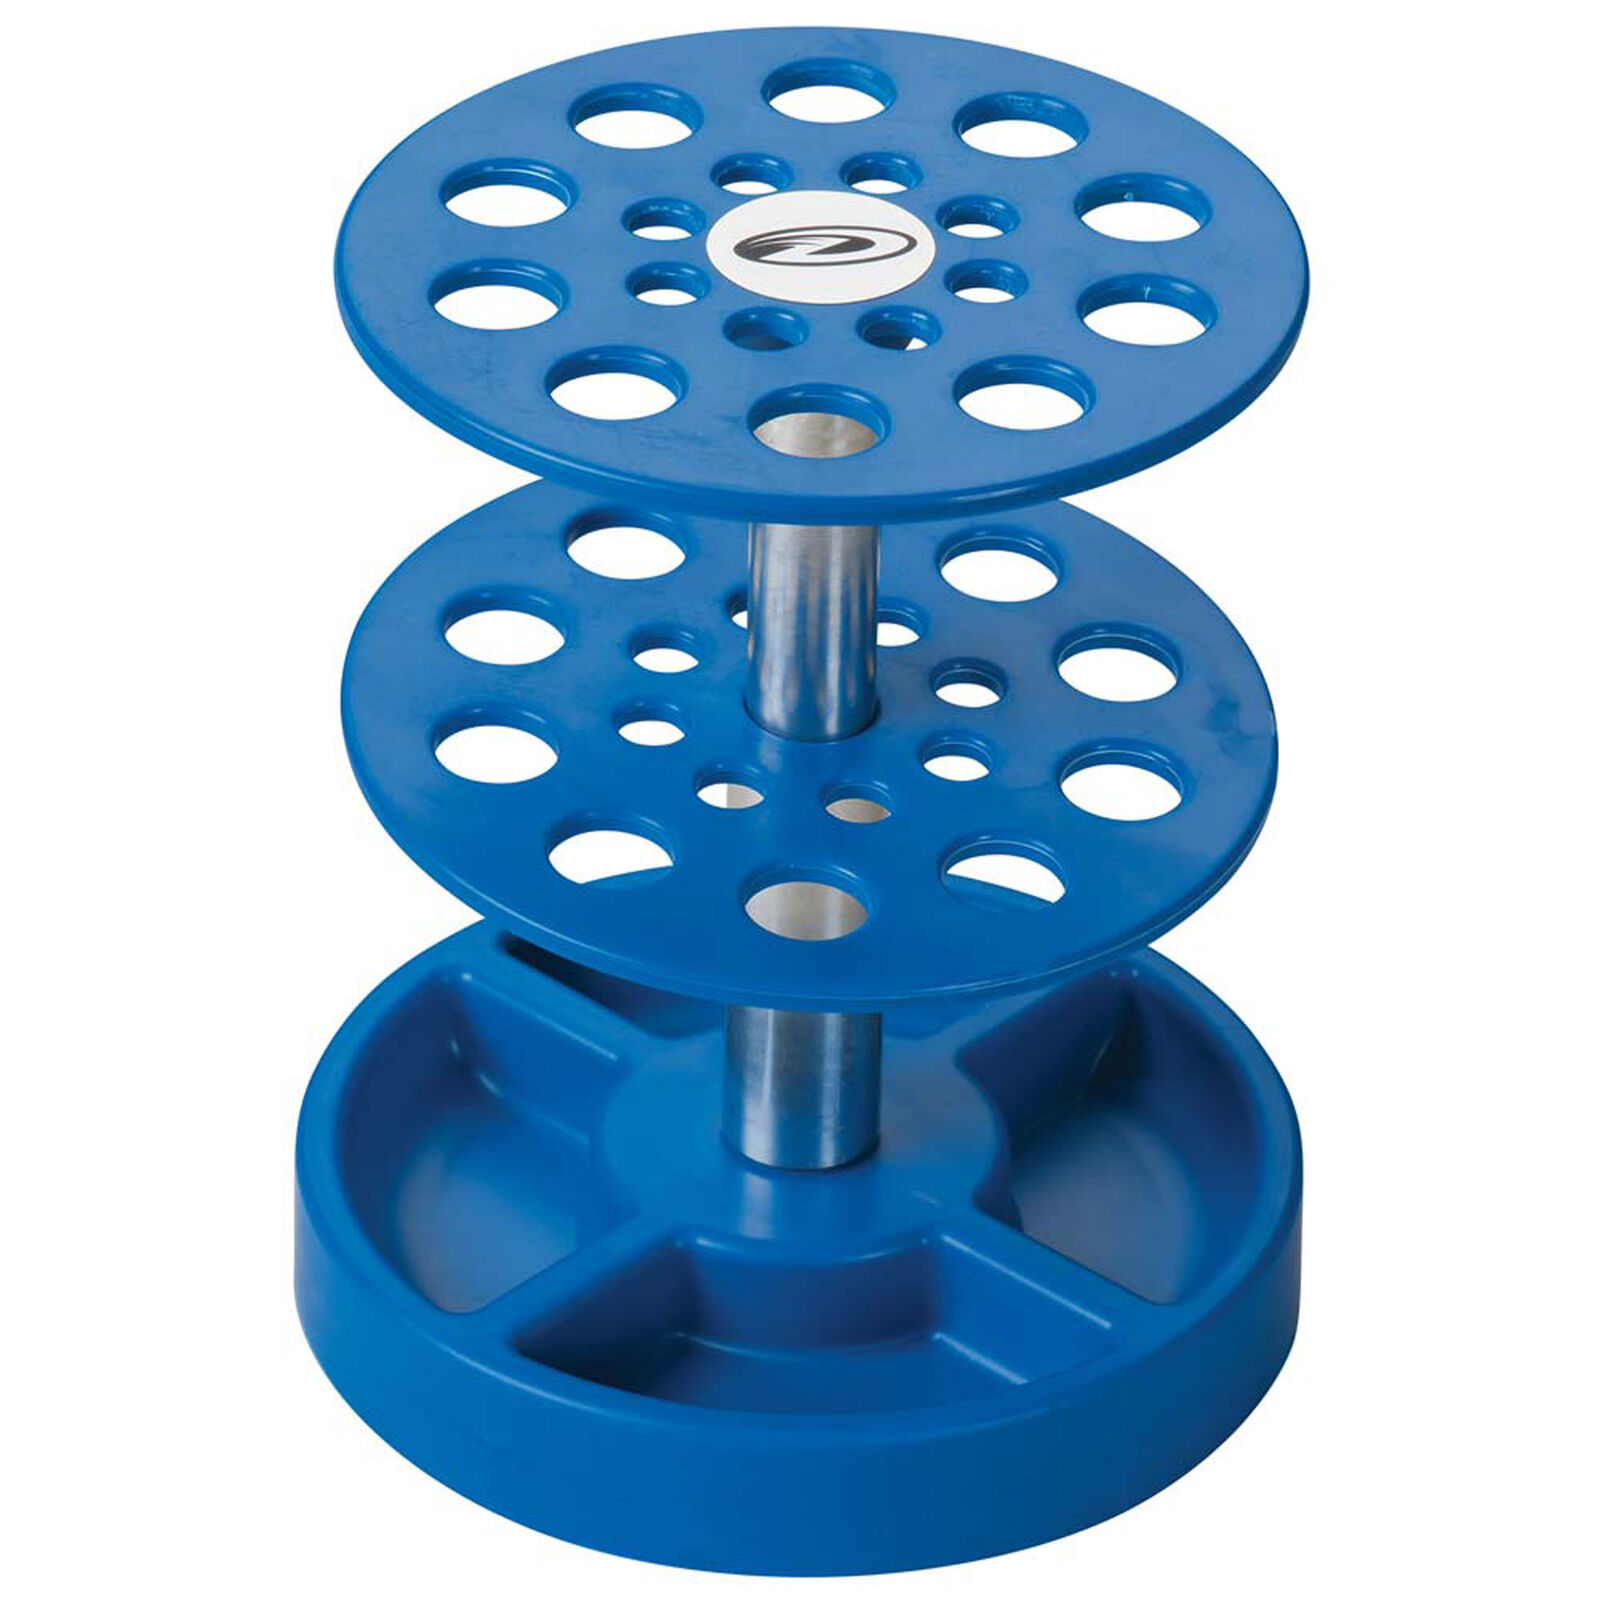 Pit Tech Deluxe Tool Stand, Blue